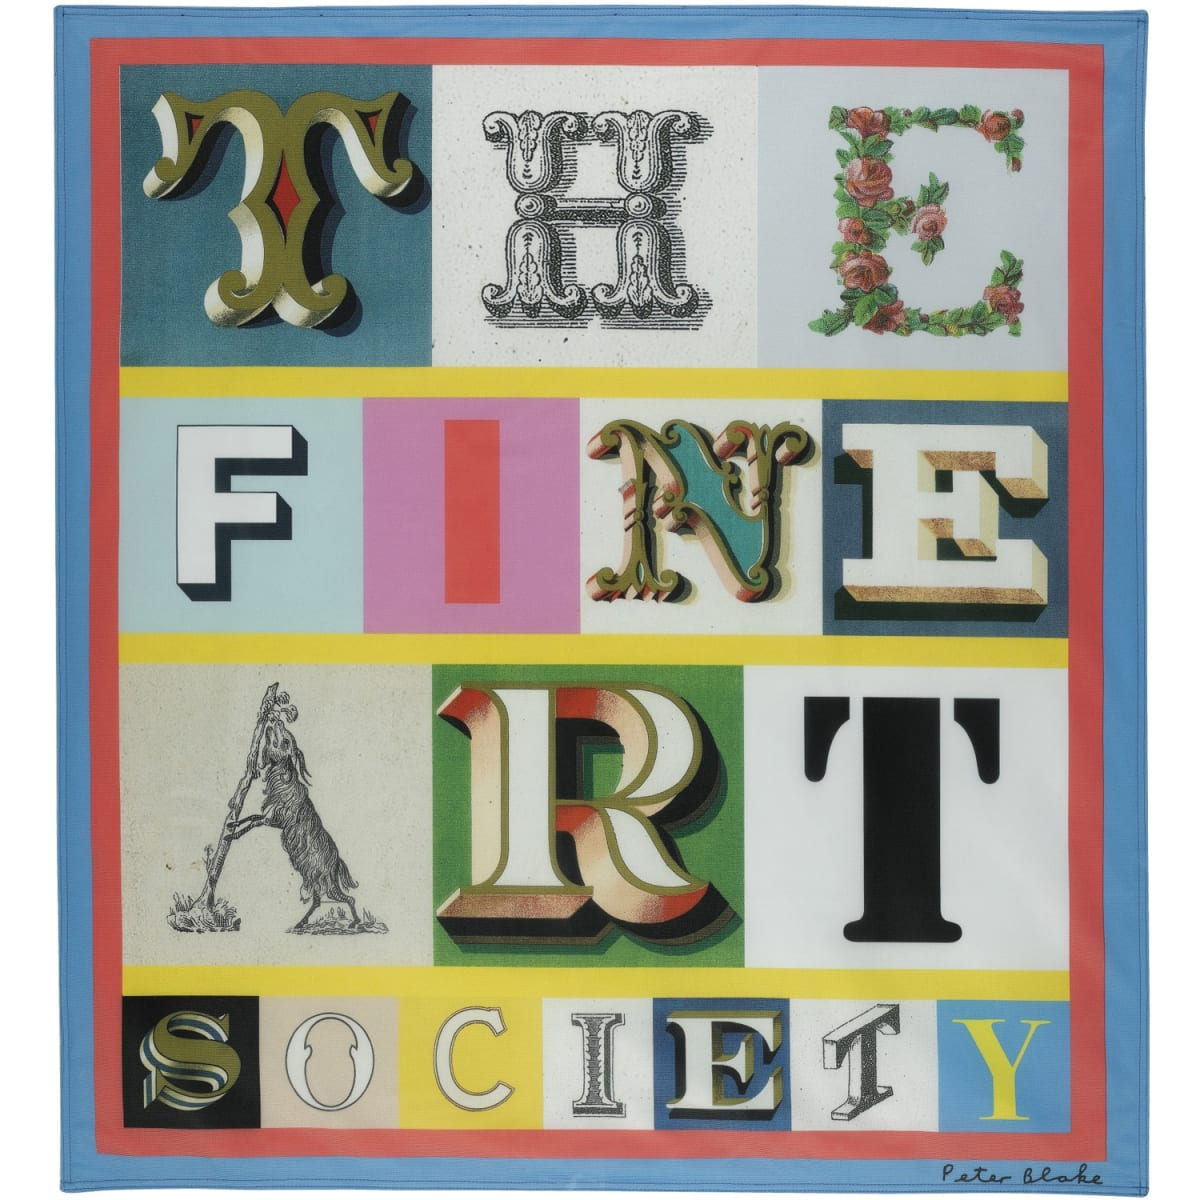 Sir Peter Blake The Fine Art Society Flag, 2013 digital print on canvas 43 1/2 x 39 3/4 inches number 19 from the edition of 50